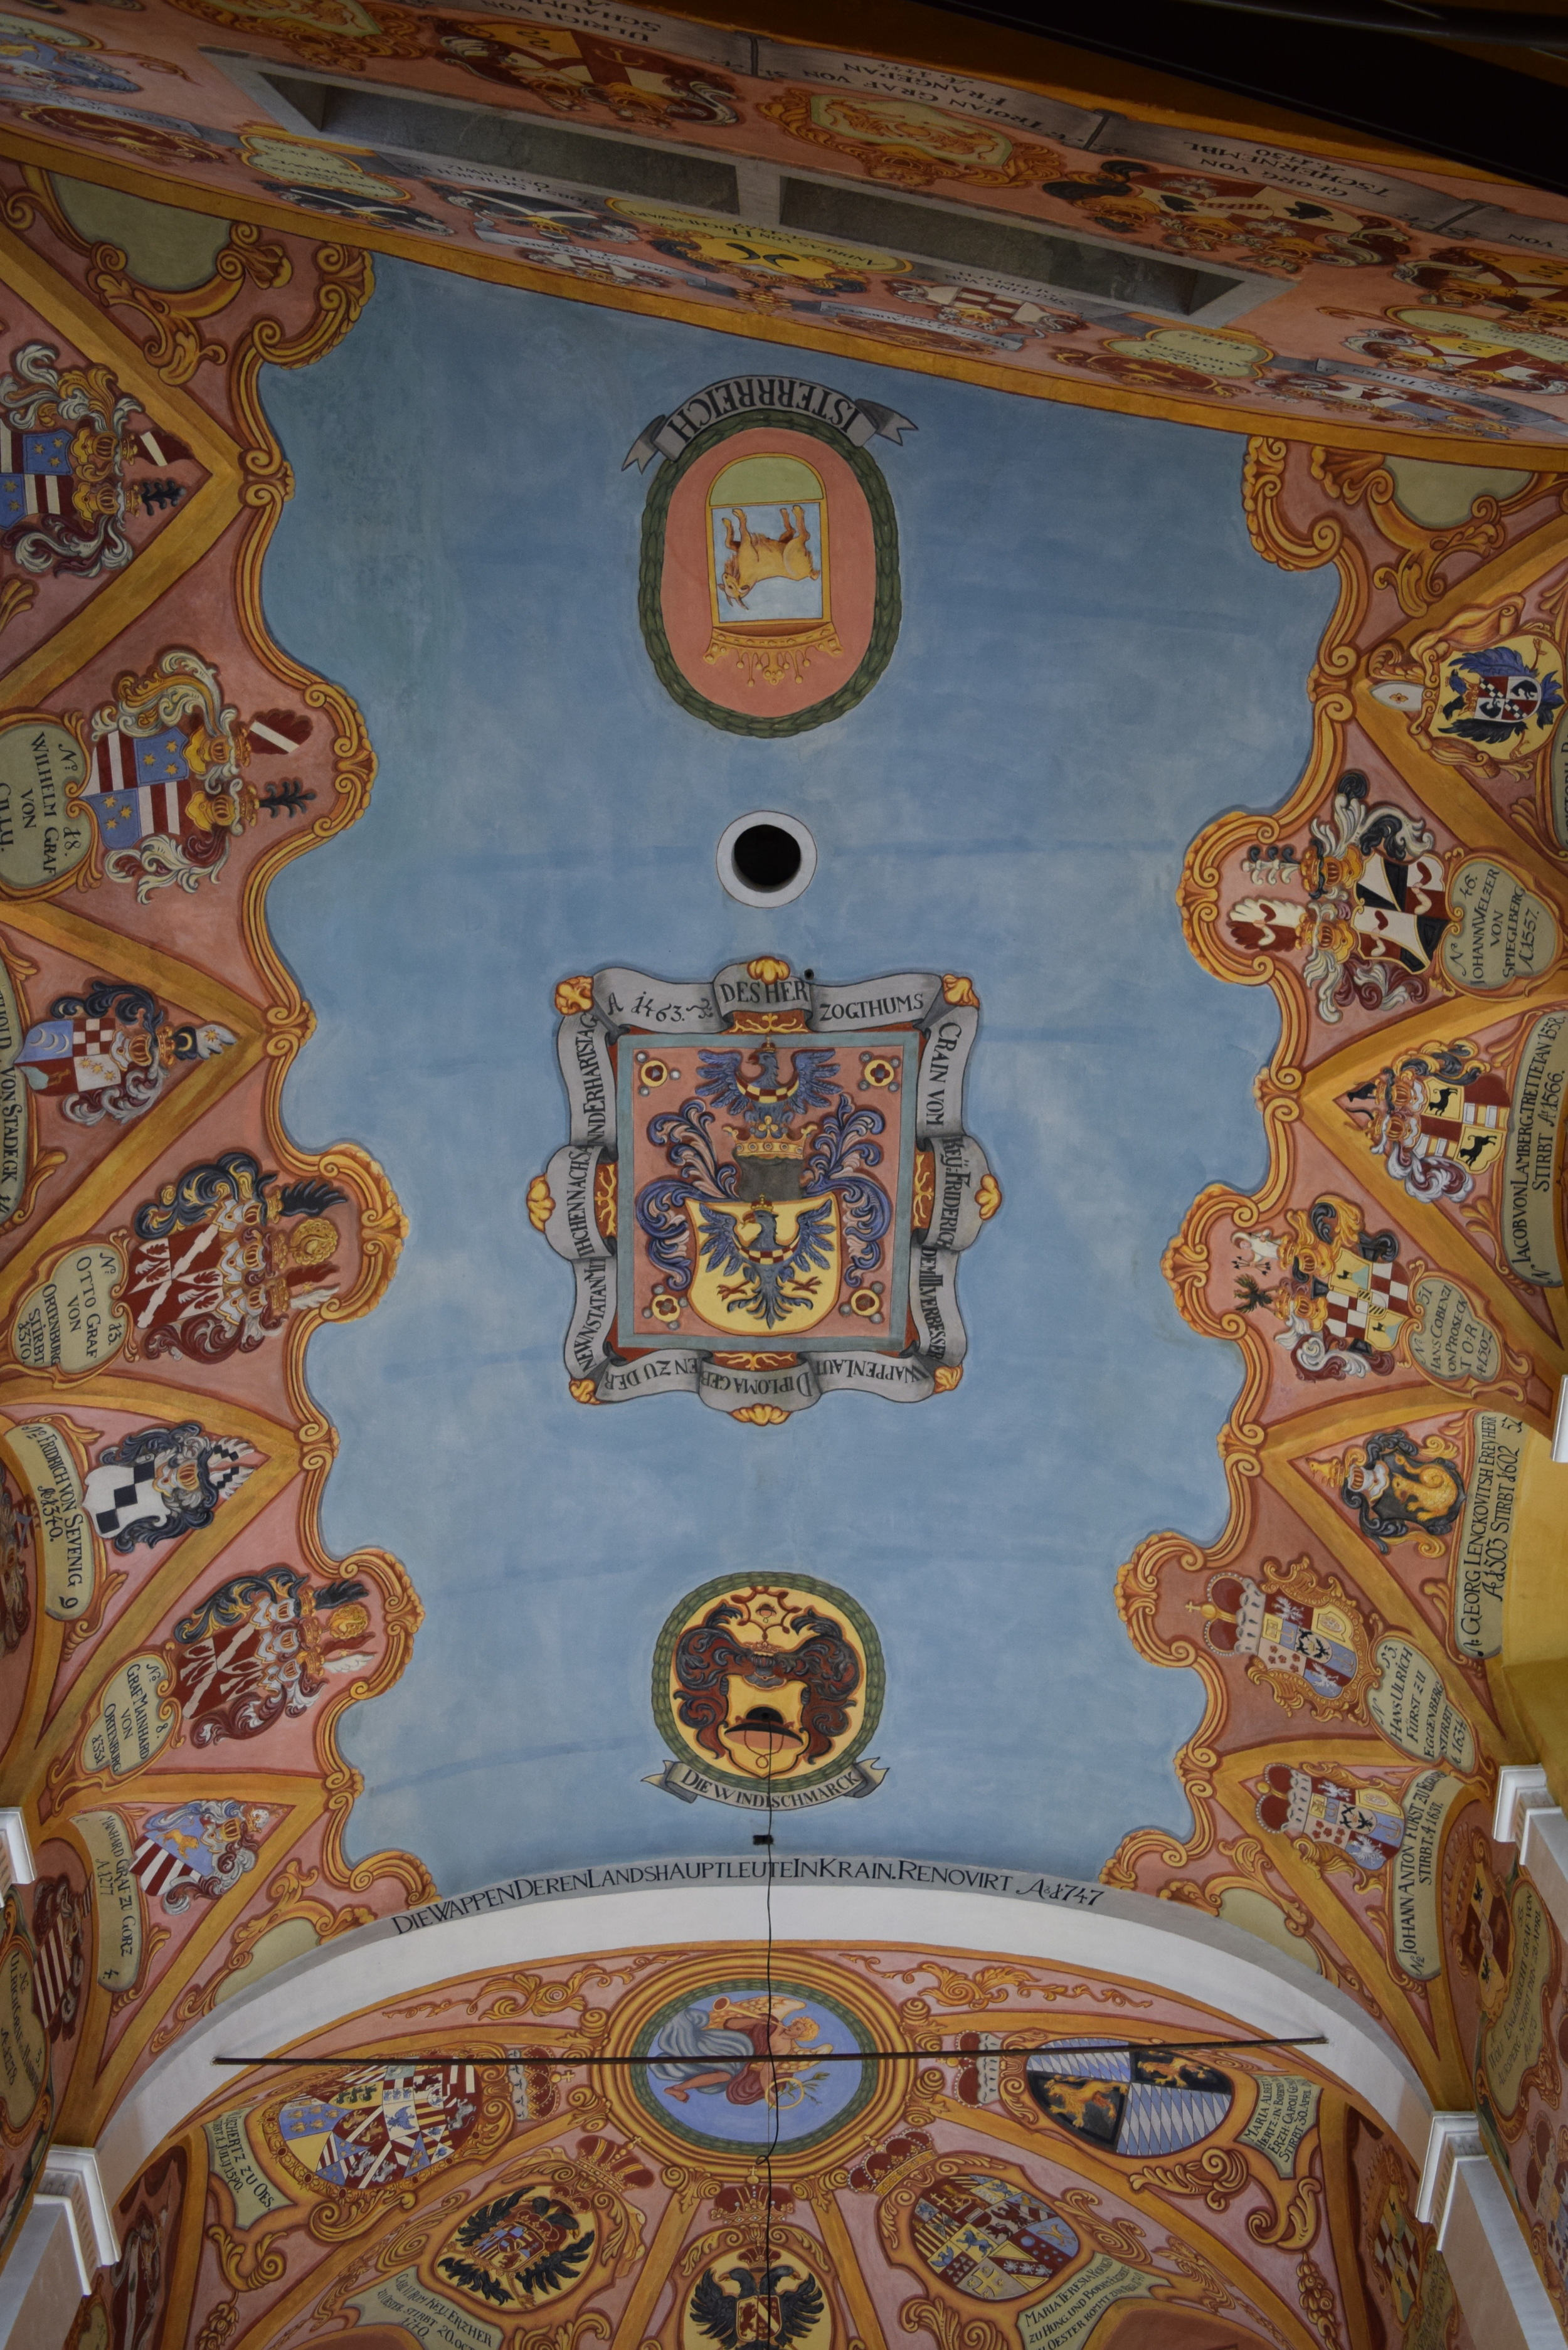 Coats of arms painted on a castle ceiling